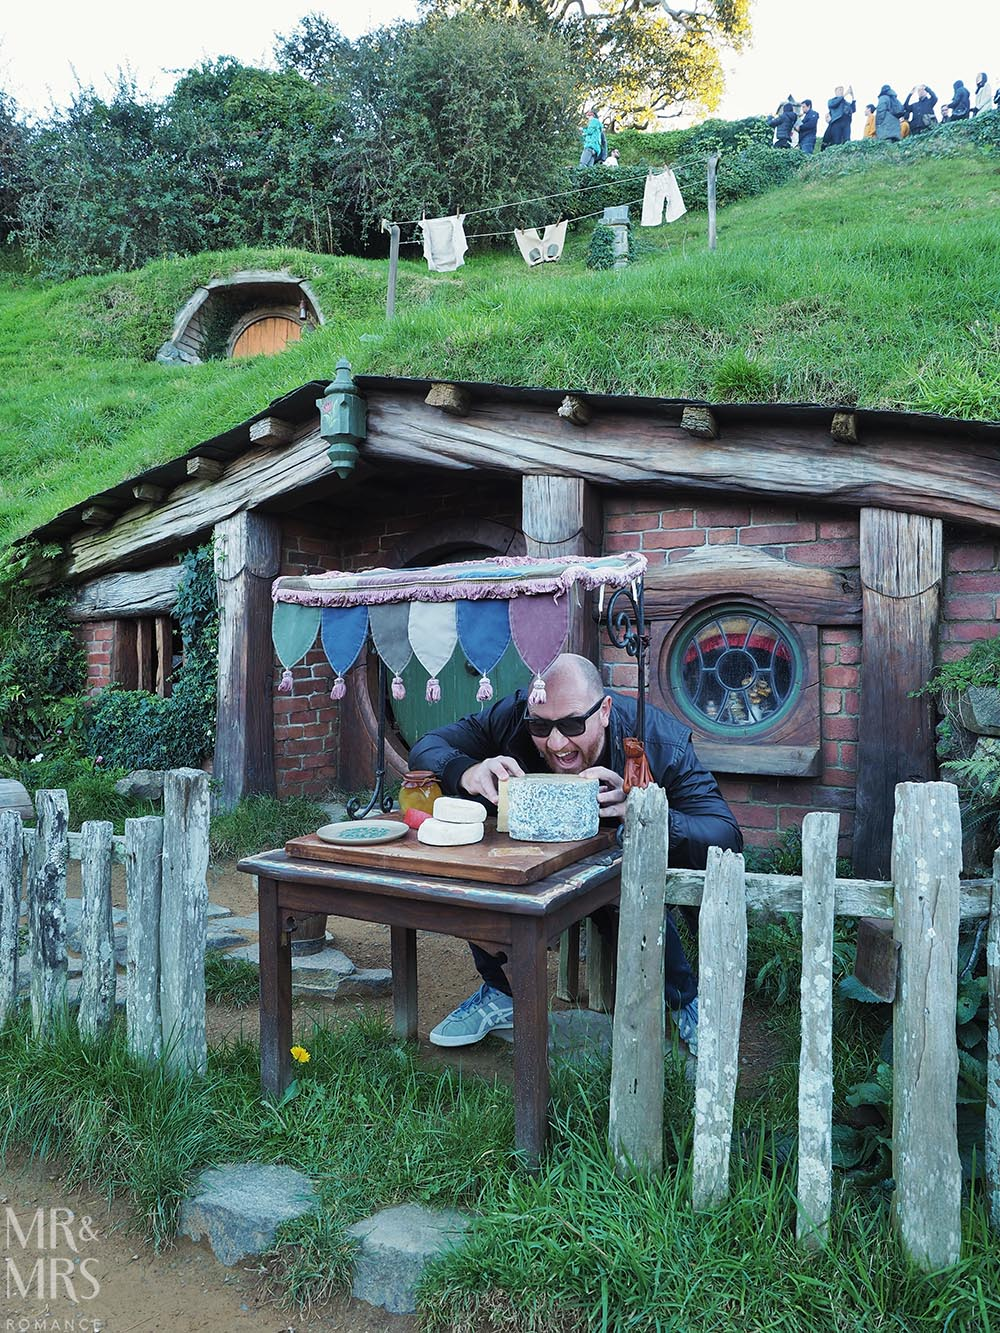 Hobbiton Movie Set, Waikato, New Zealand - cheese